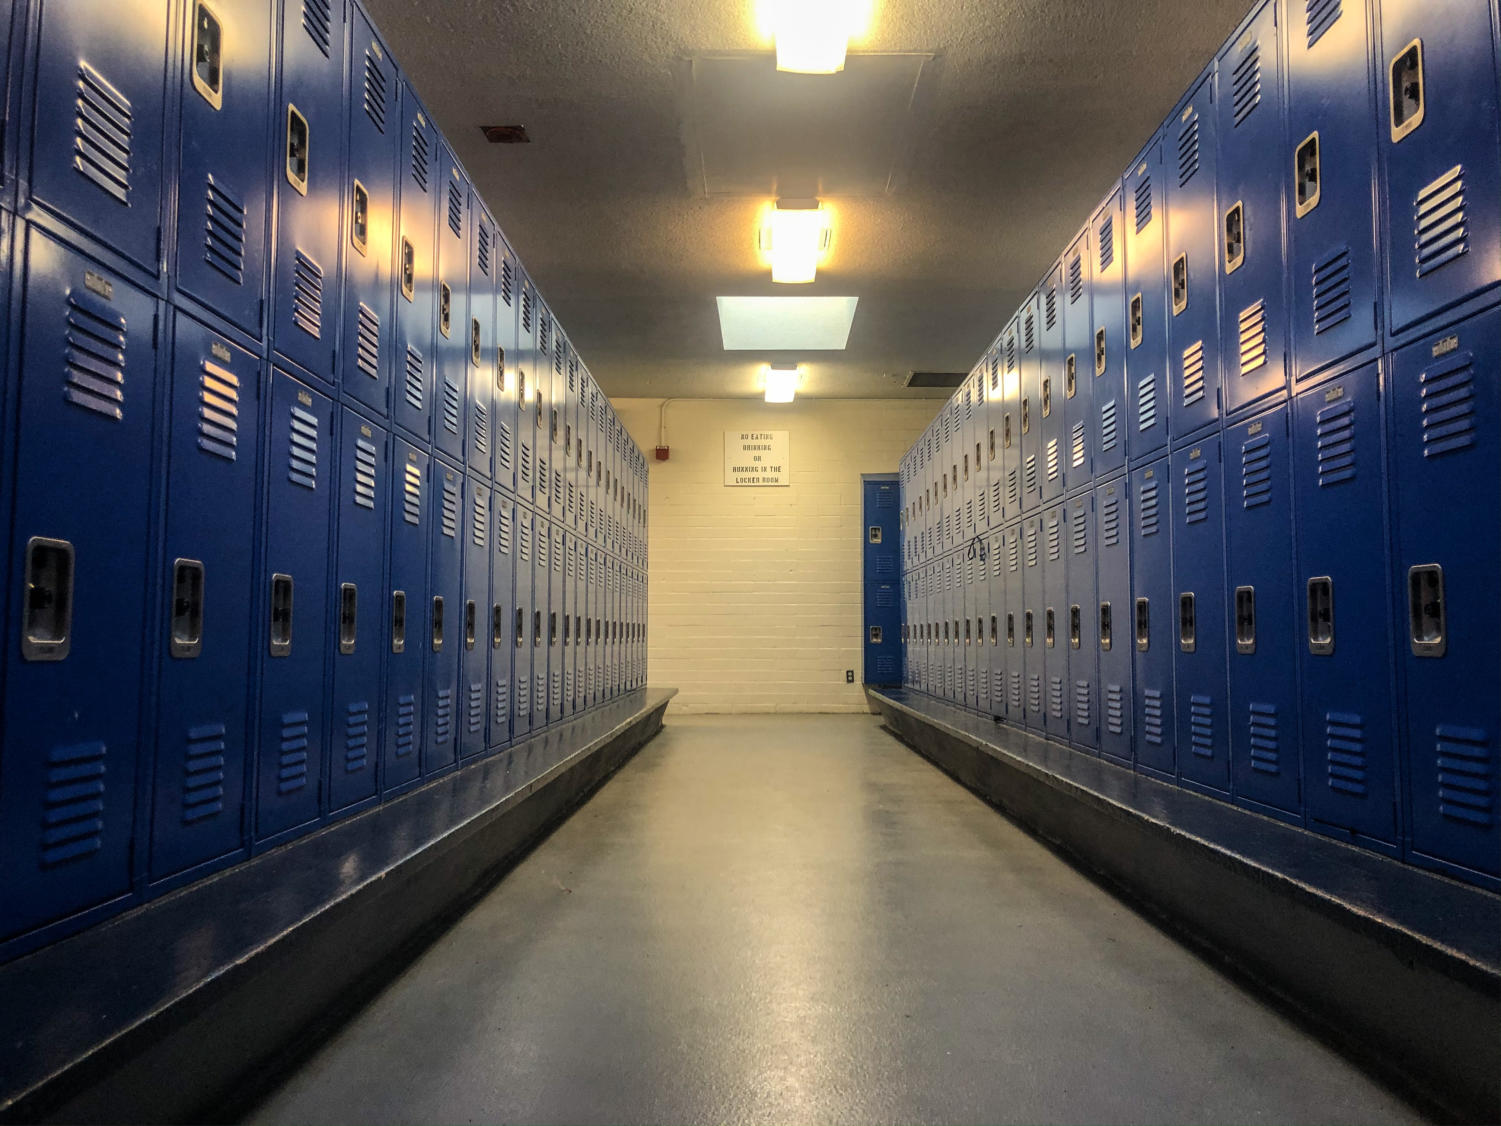 The upstairs girls' locker room where the theft took place.